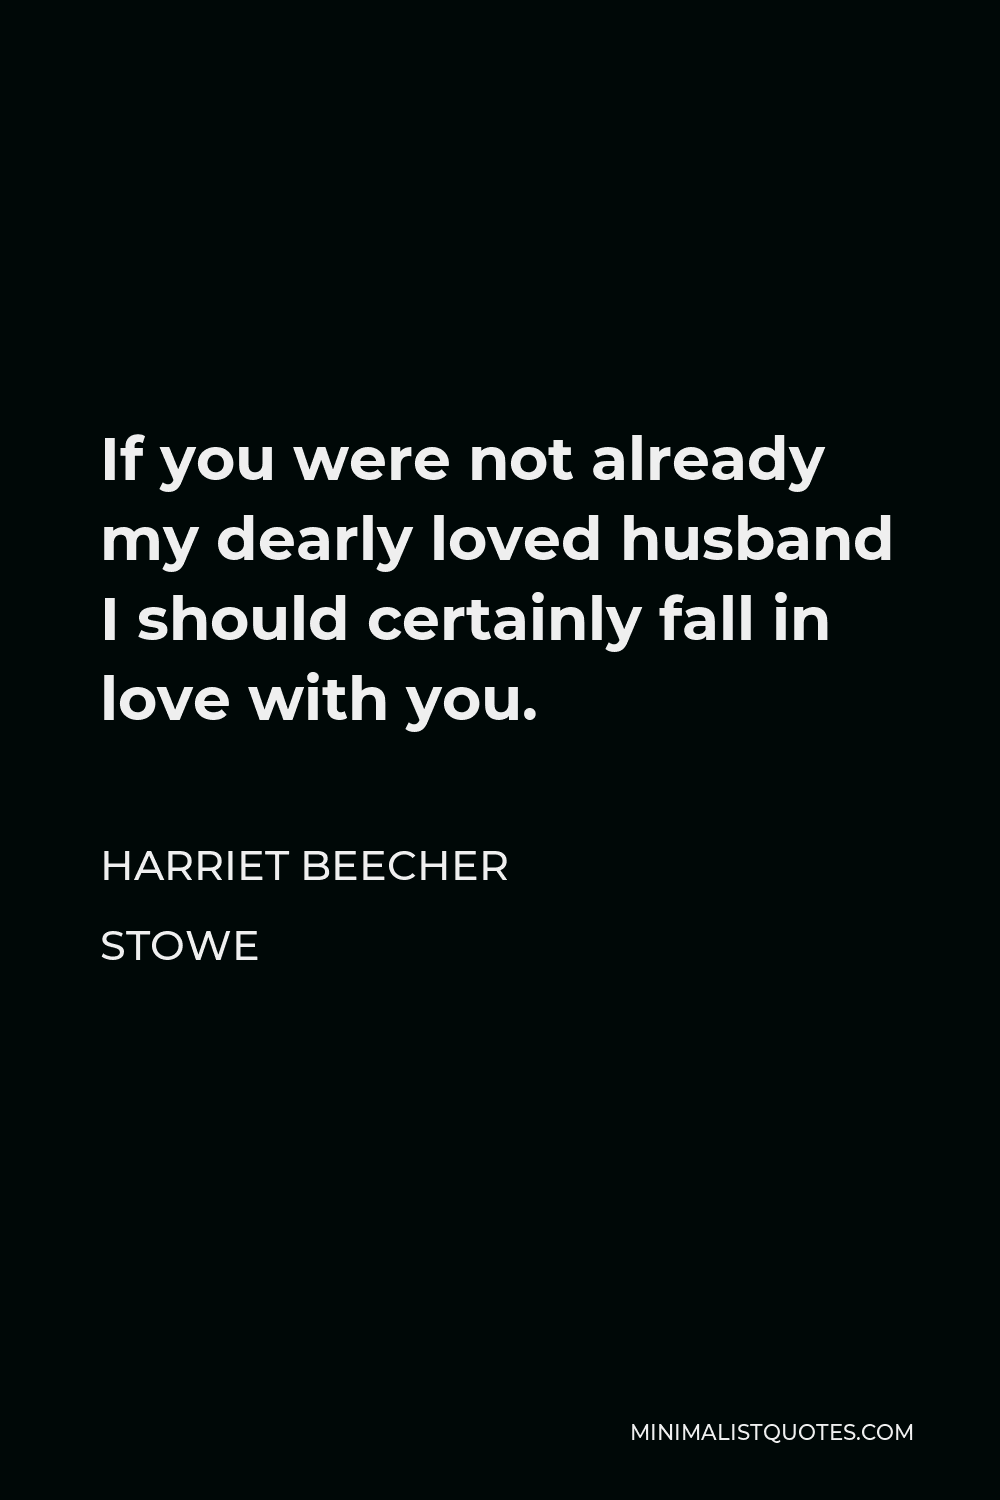 Harriet Beecher Stowe Quote - If you were not already my dearly loved husband I should certainly fall in love with you.